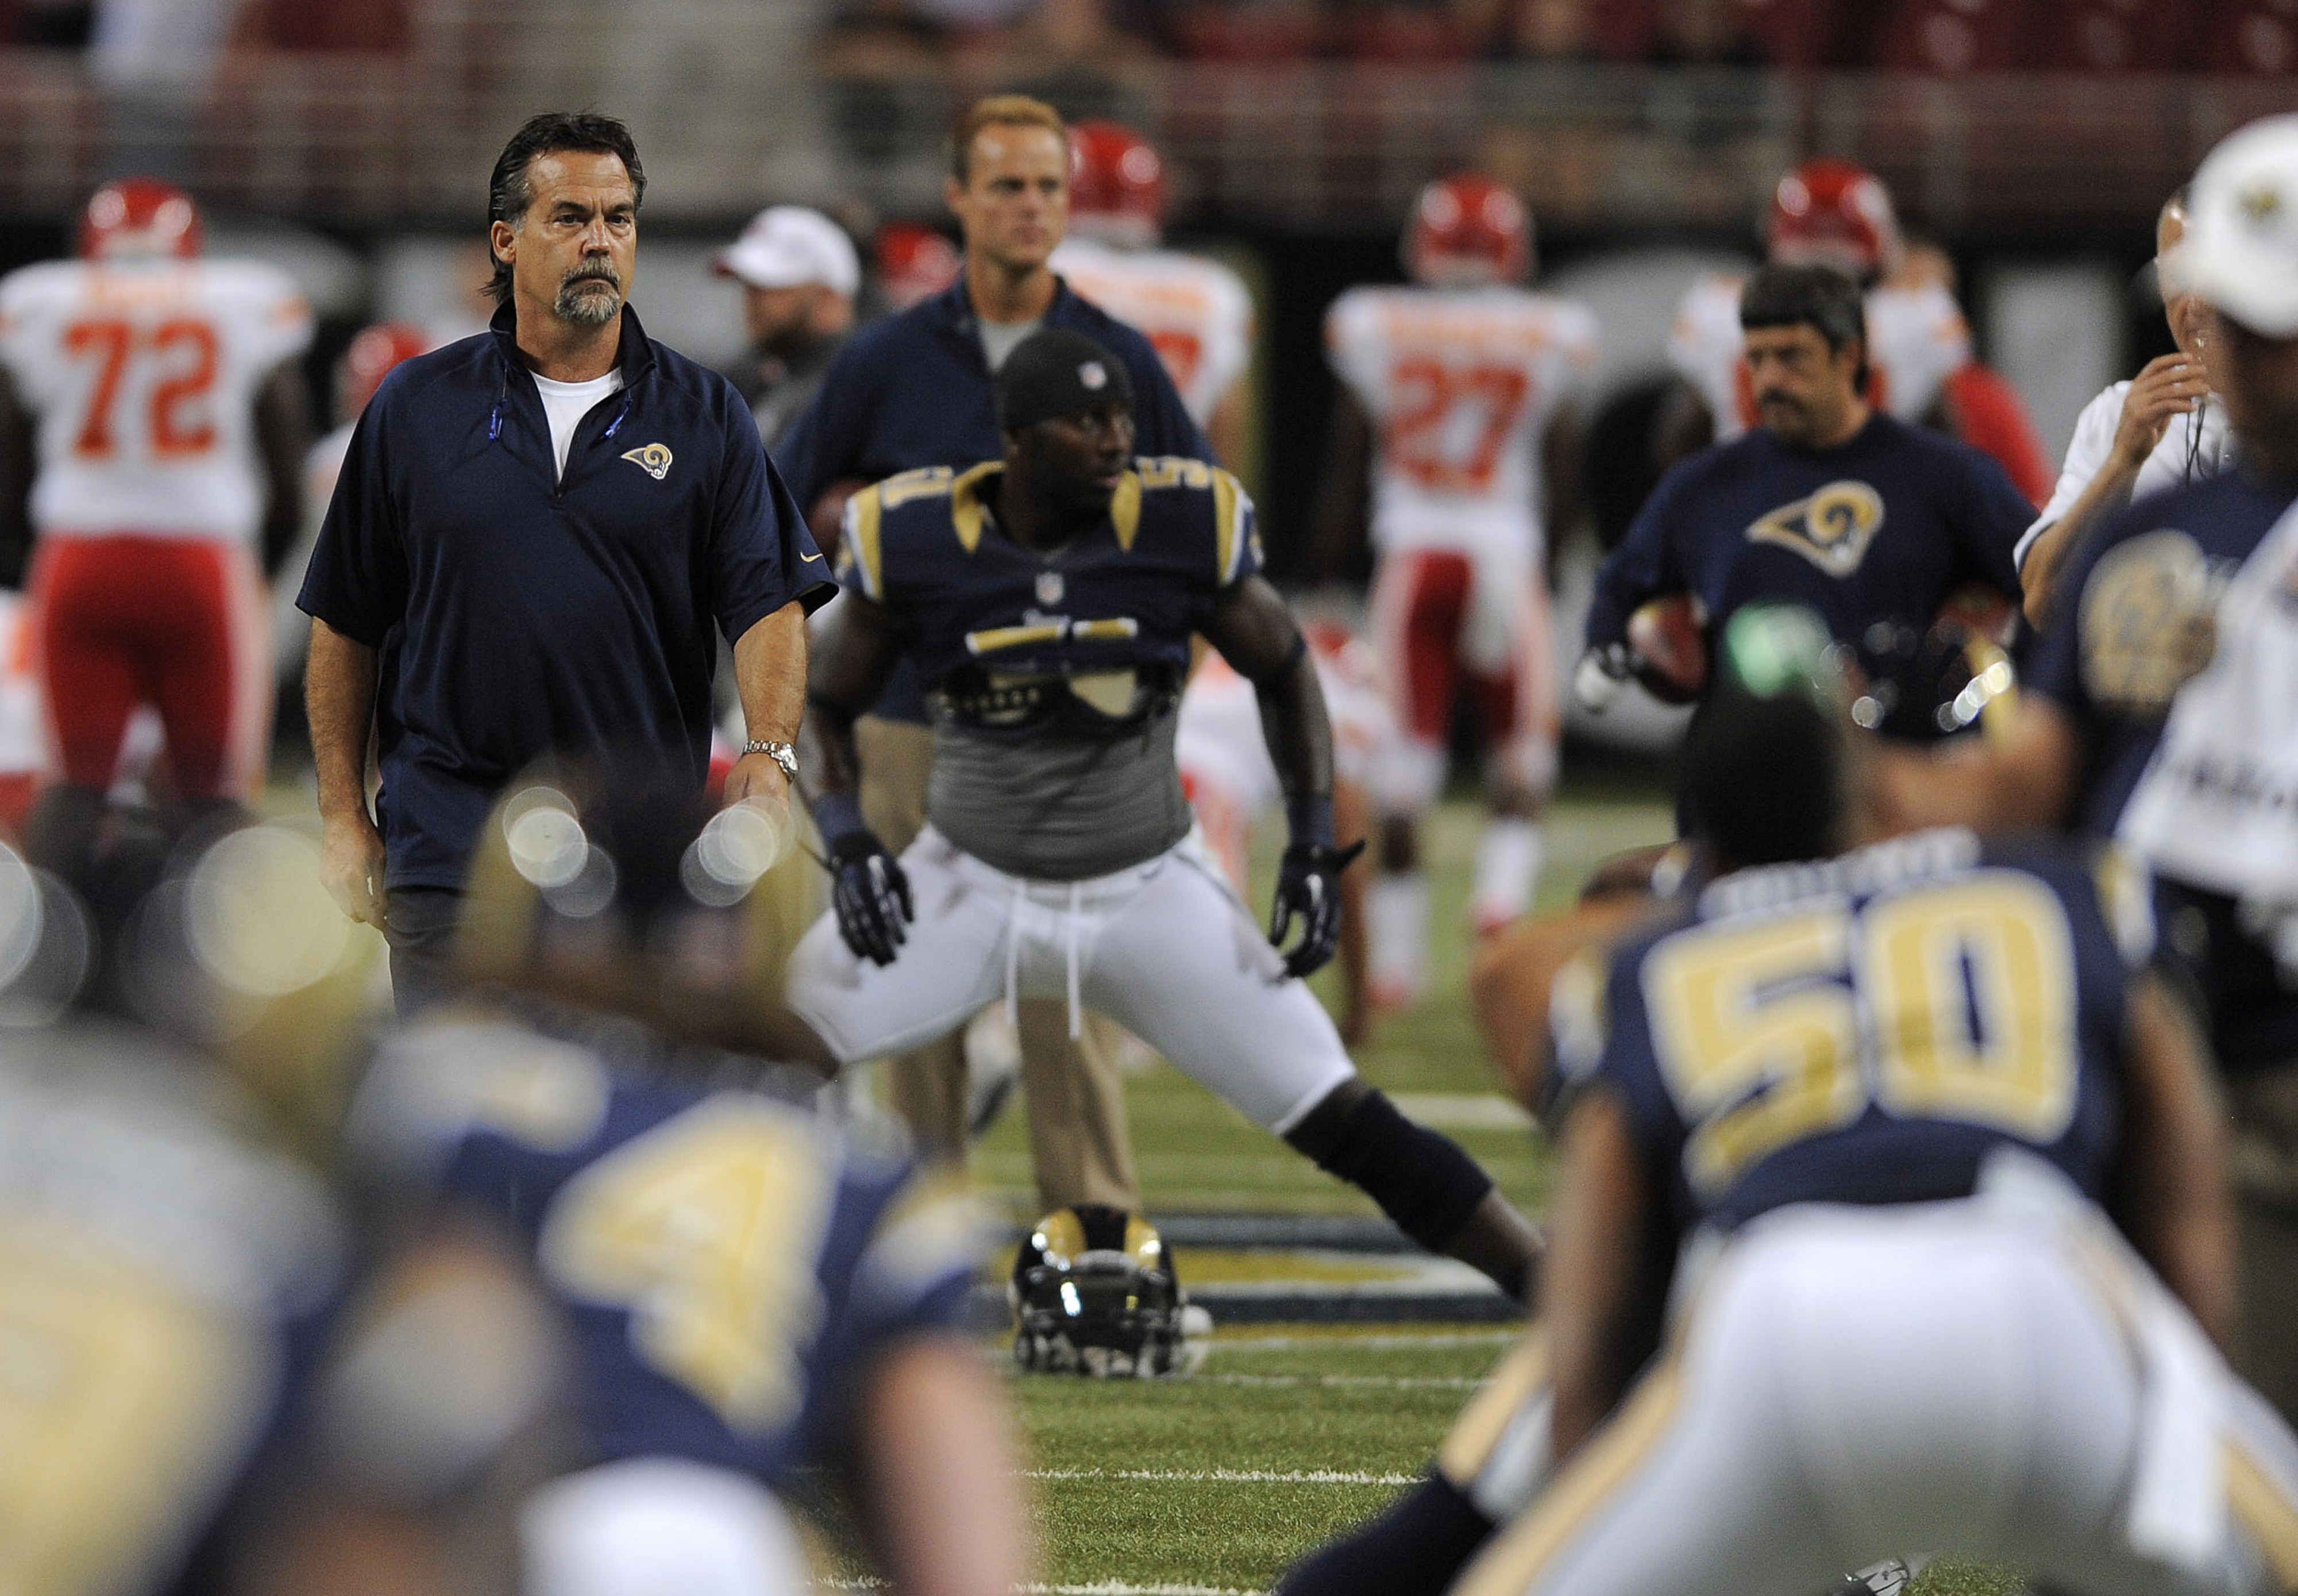 August 18, 2012; St. Louis, MO, USA; St. Louis Rams head coach Jeff Fisher looks on as his team warms up before a game against the Kansas City Chiefs at the Edward Jones Dome. Mandatory Credit: Jeff Curry-US PRESSWIRE